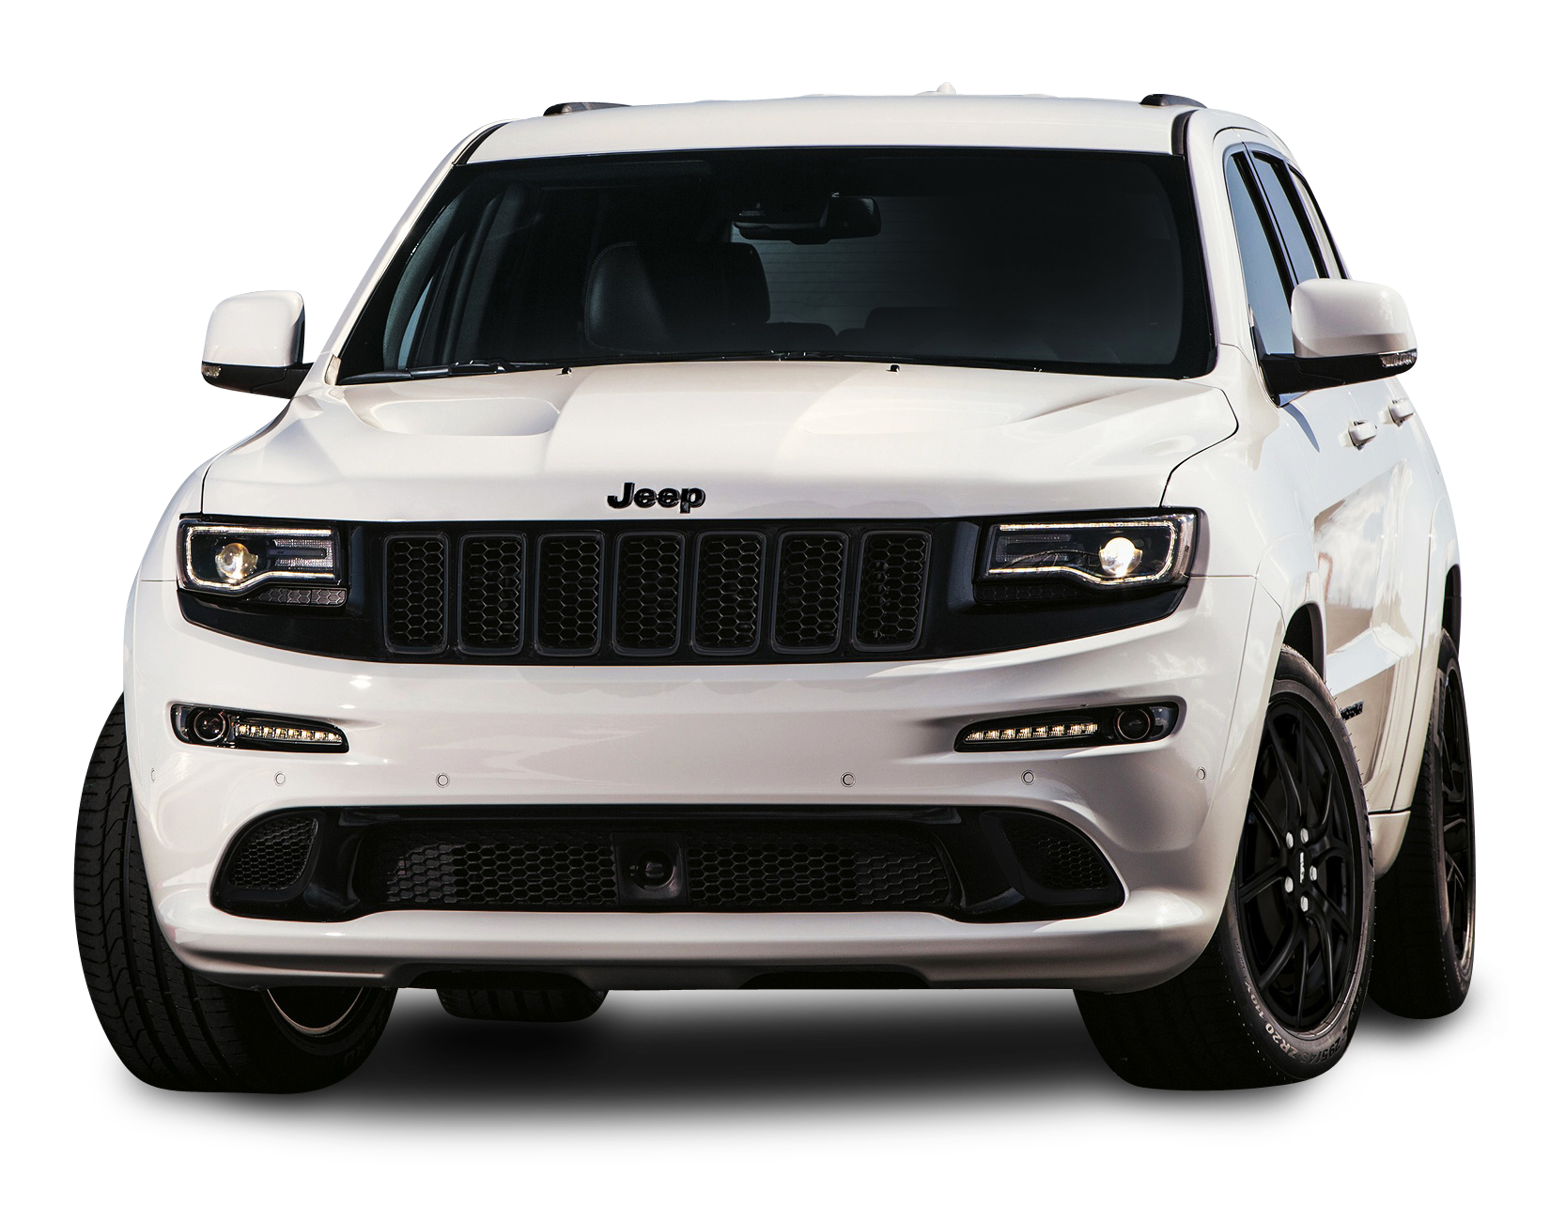 Jeep cherokee vector png. Car hd transparent images